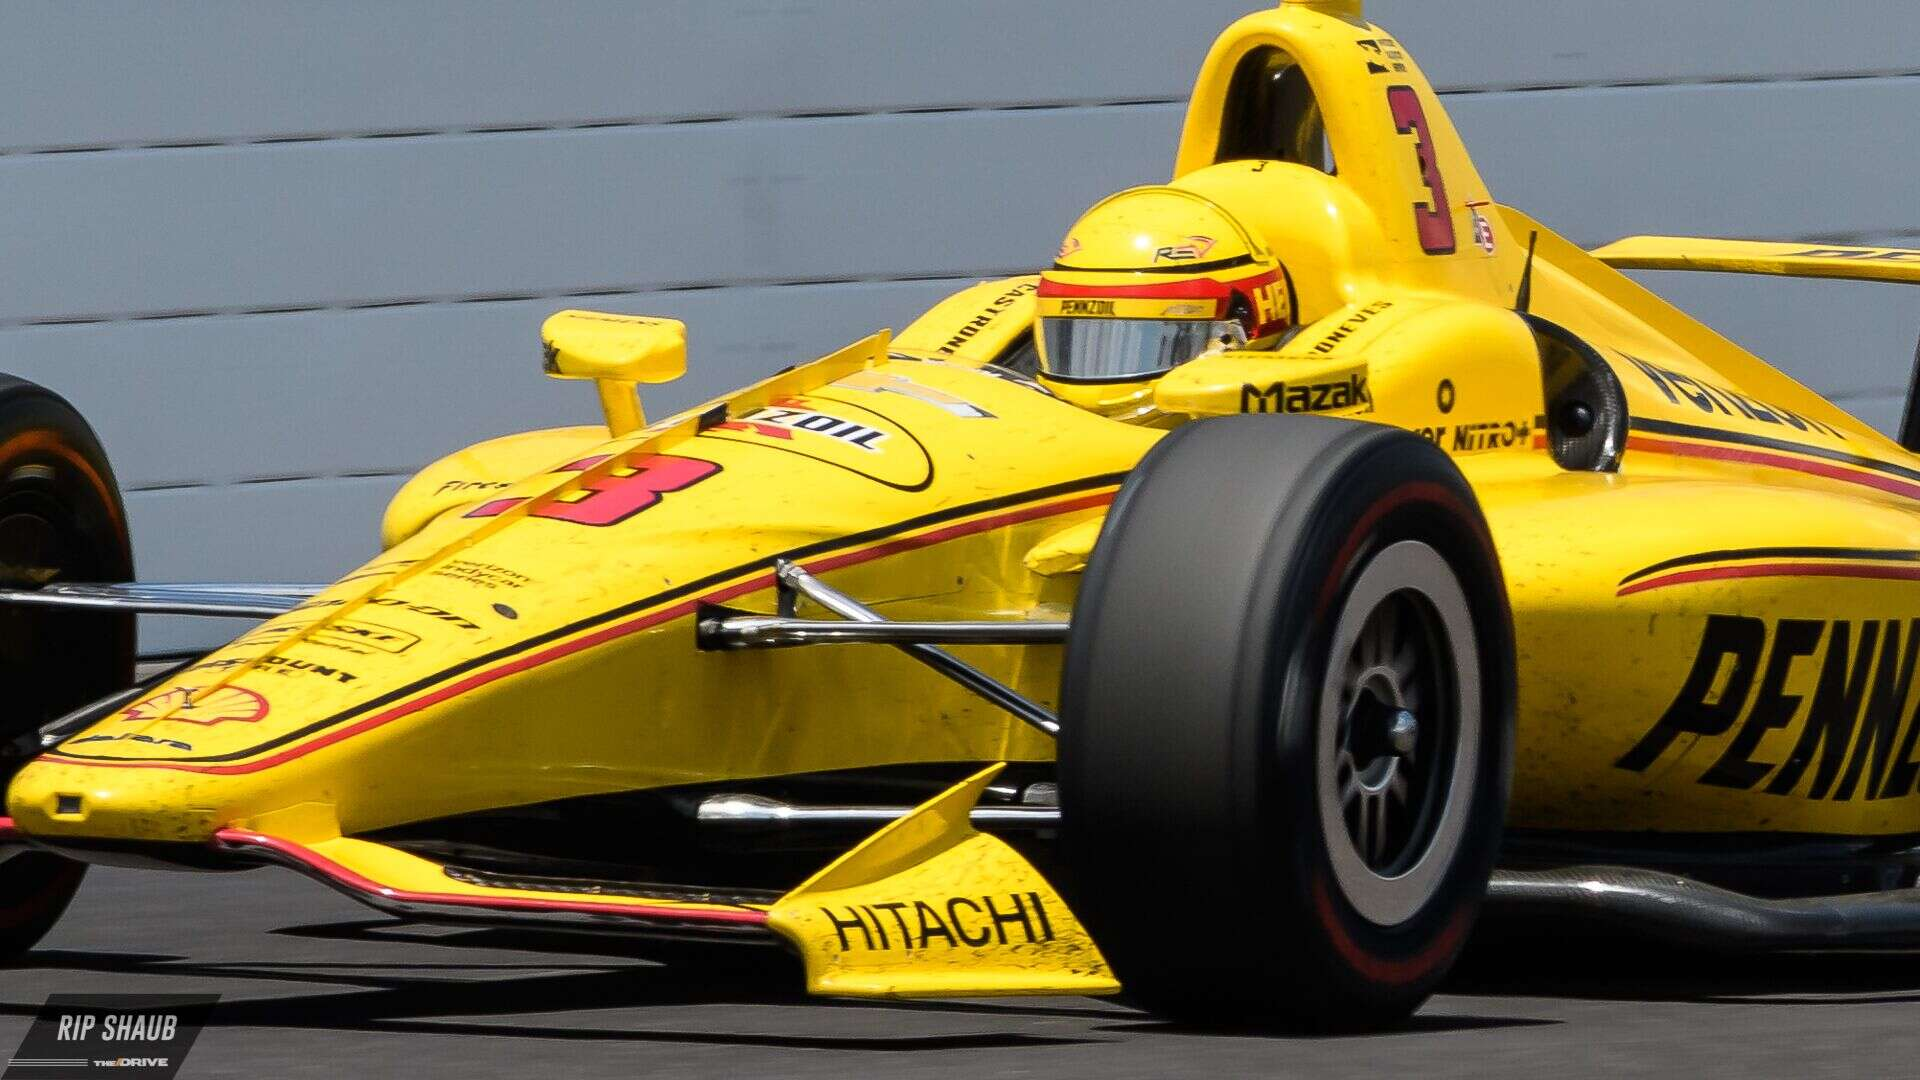 Penske Near Me >> Helio Castroneves Will Return to the 2019 Indy 500 With ...